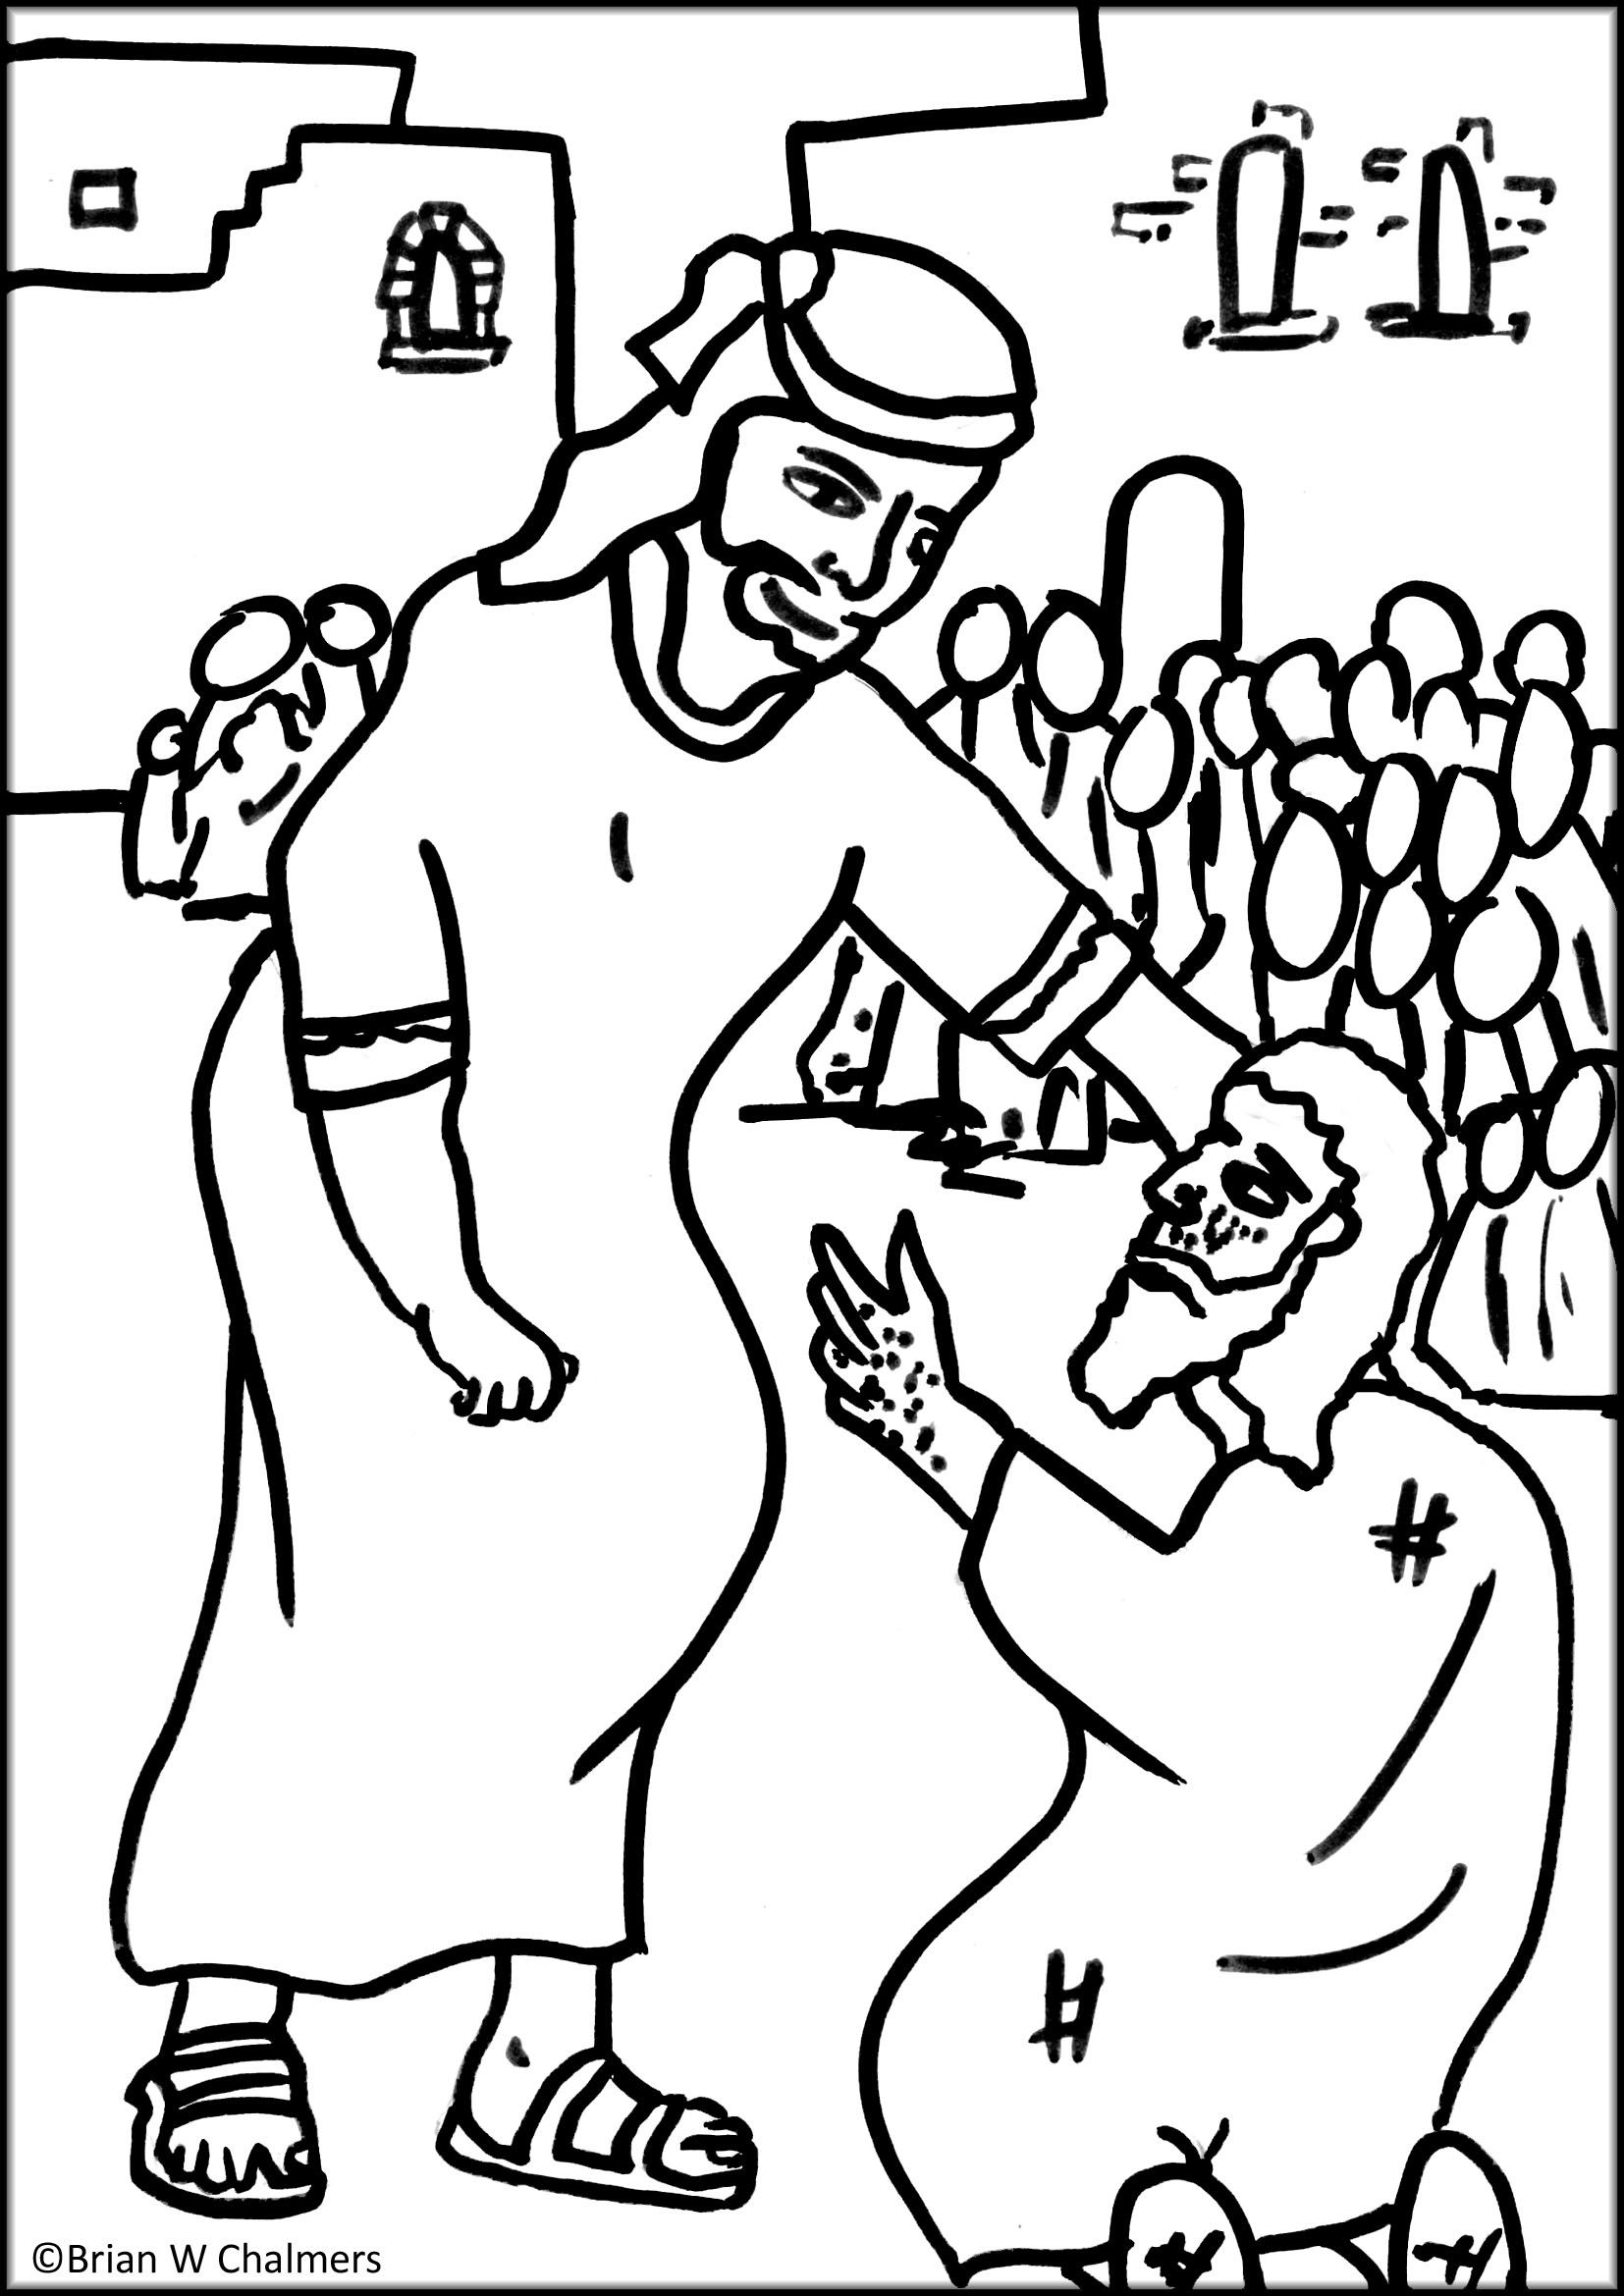 Coloring Page Sunday School Kids School Kids Crafts Jesus Heals